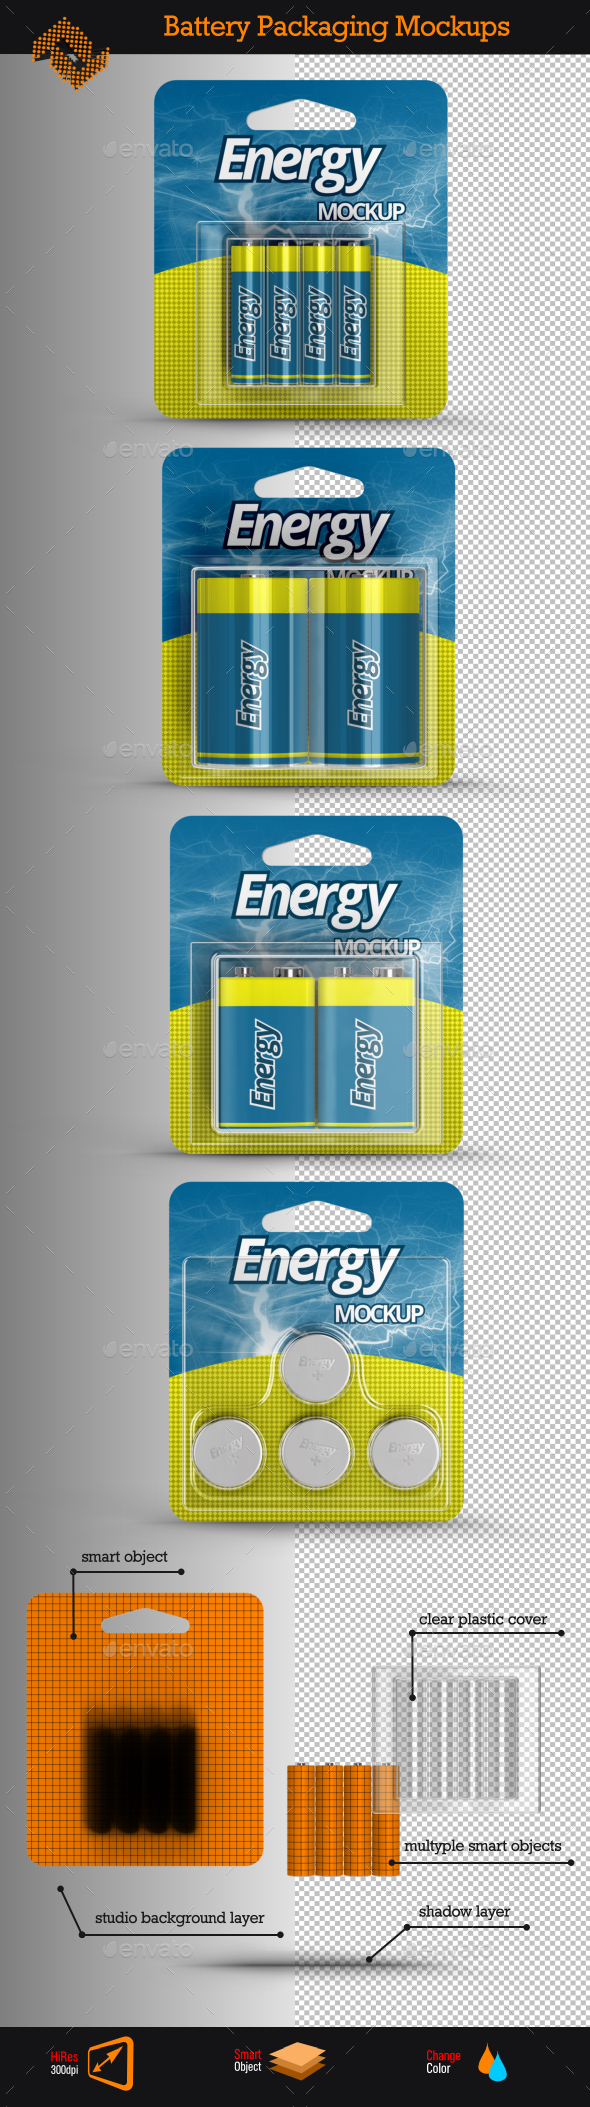 4 Battery Packaging Mockups